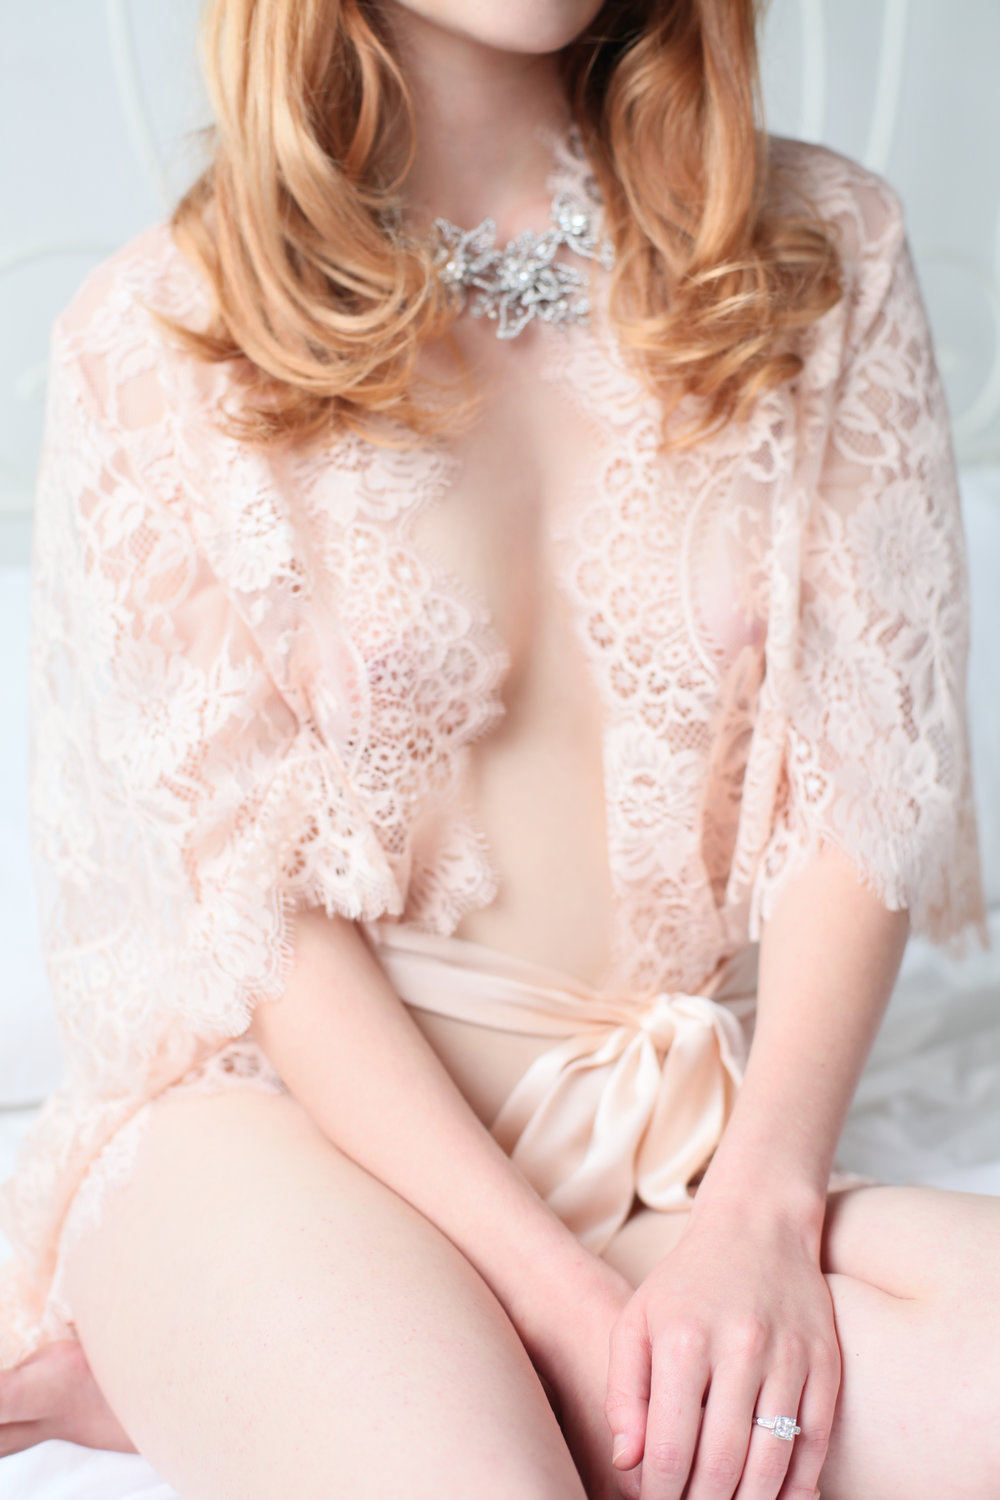 los-angeles-boudoir-photography-bridal-boudoir-capture-boudoir.jpg